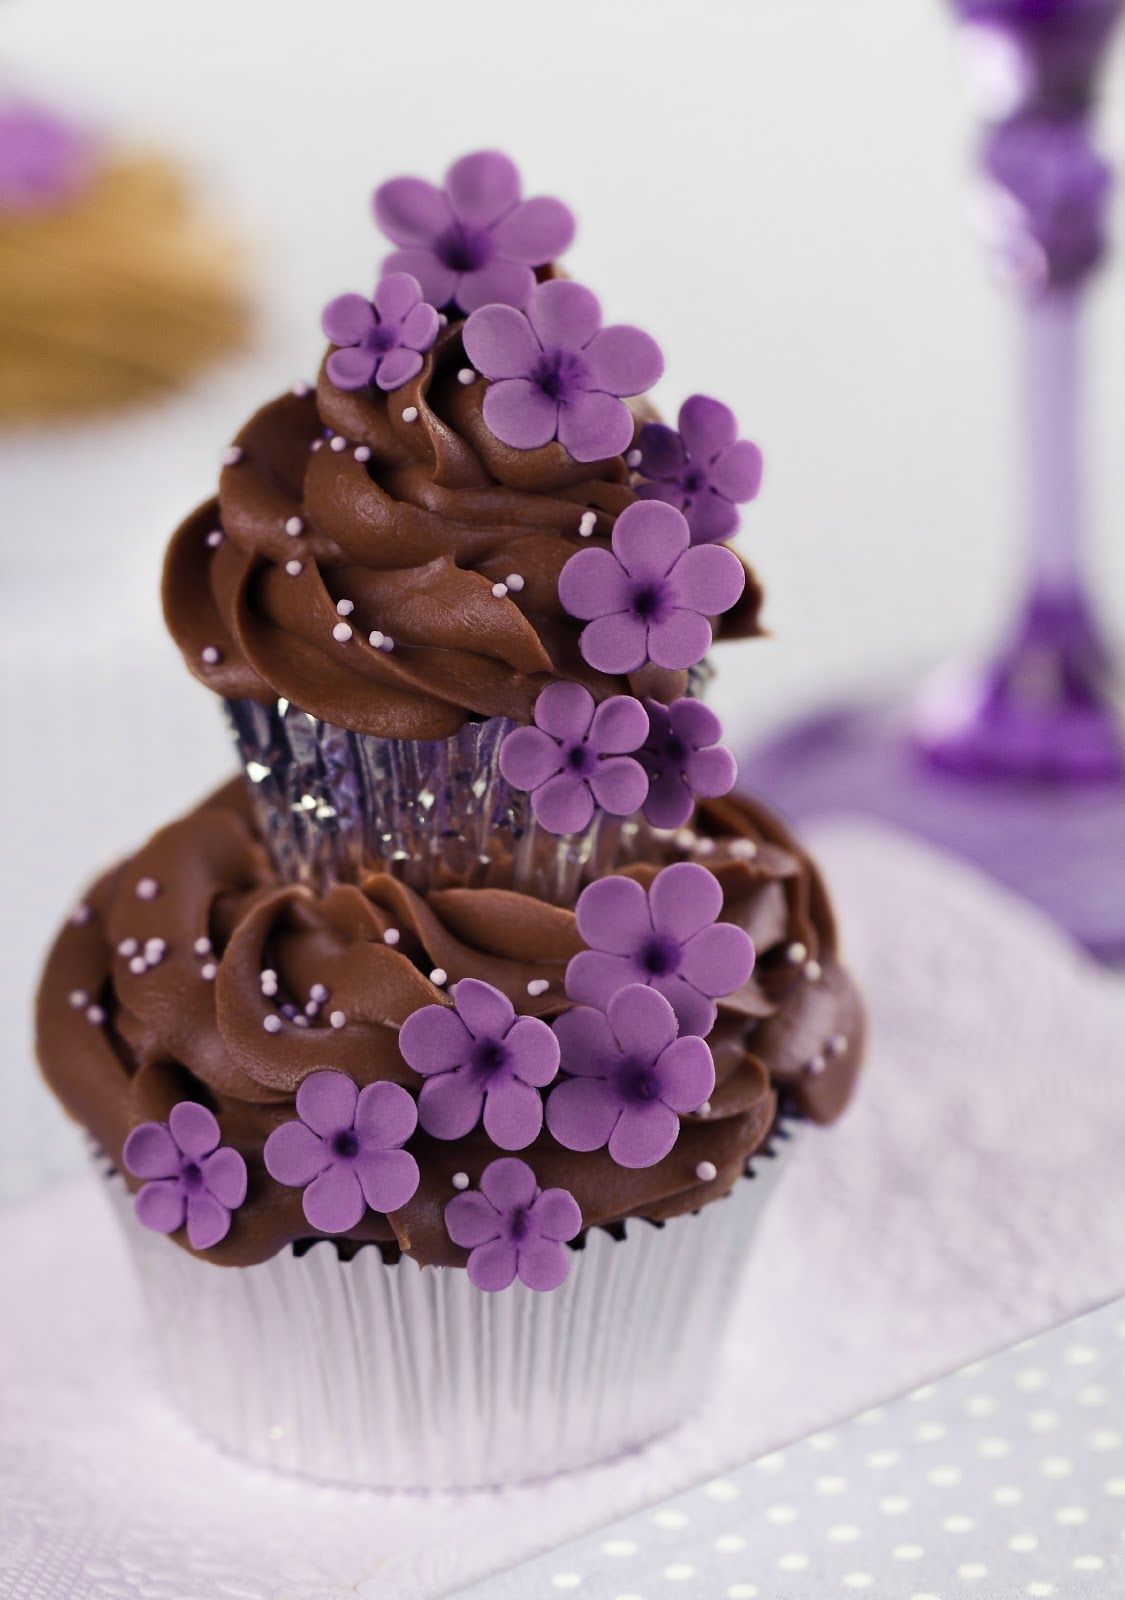 frosting designs for cupcakes | Cool Cupcake Pictures Ideas ...